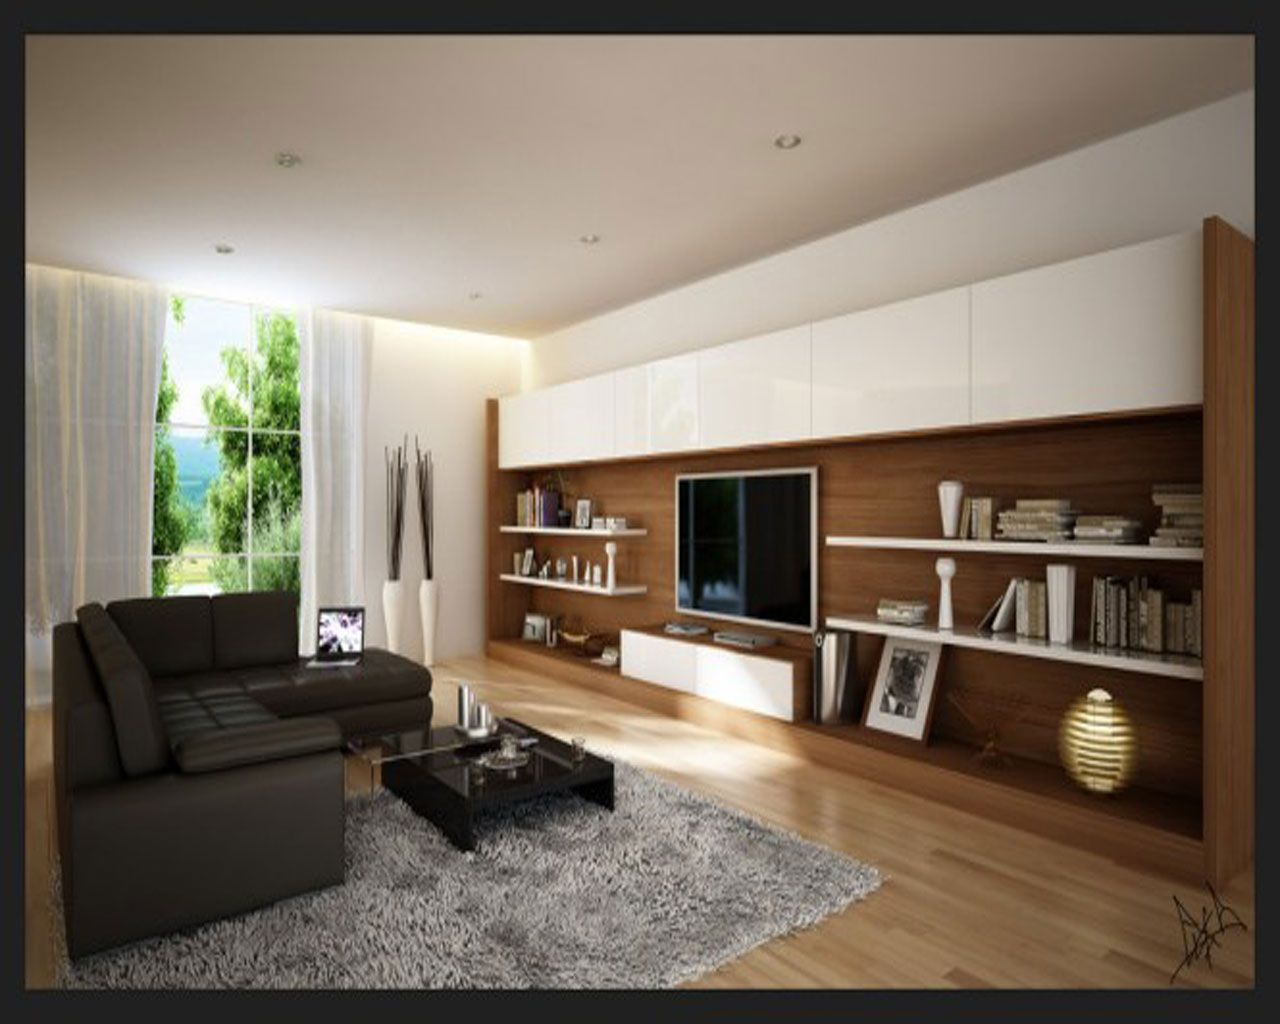 Living Room Style. living room style design  Roomspiration Pinterest Living